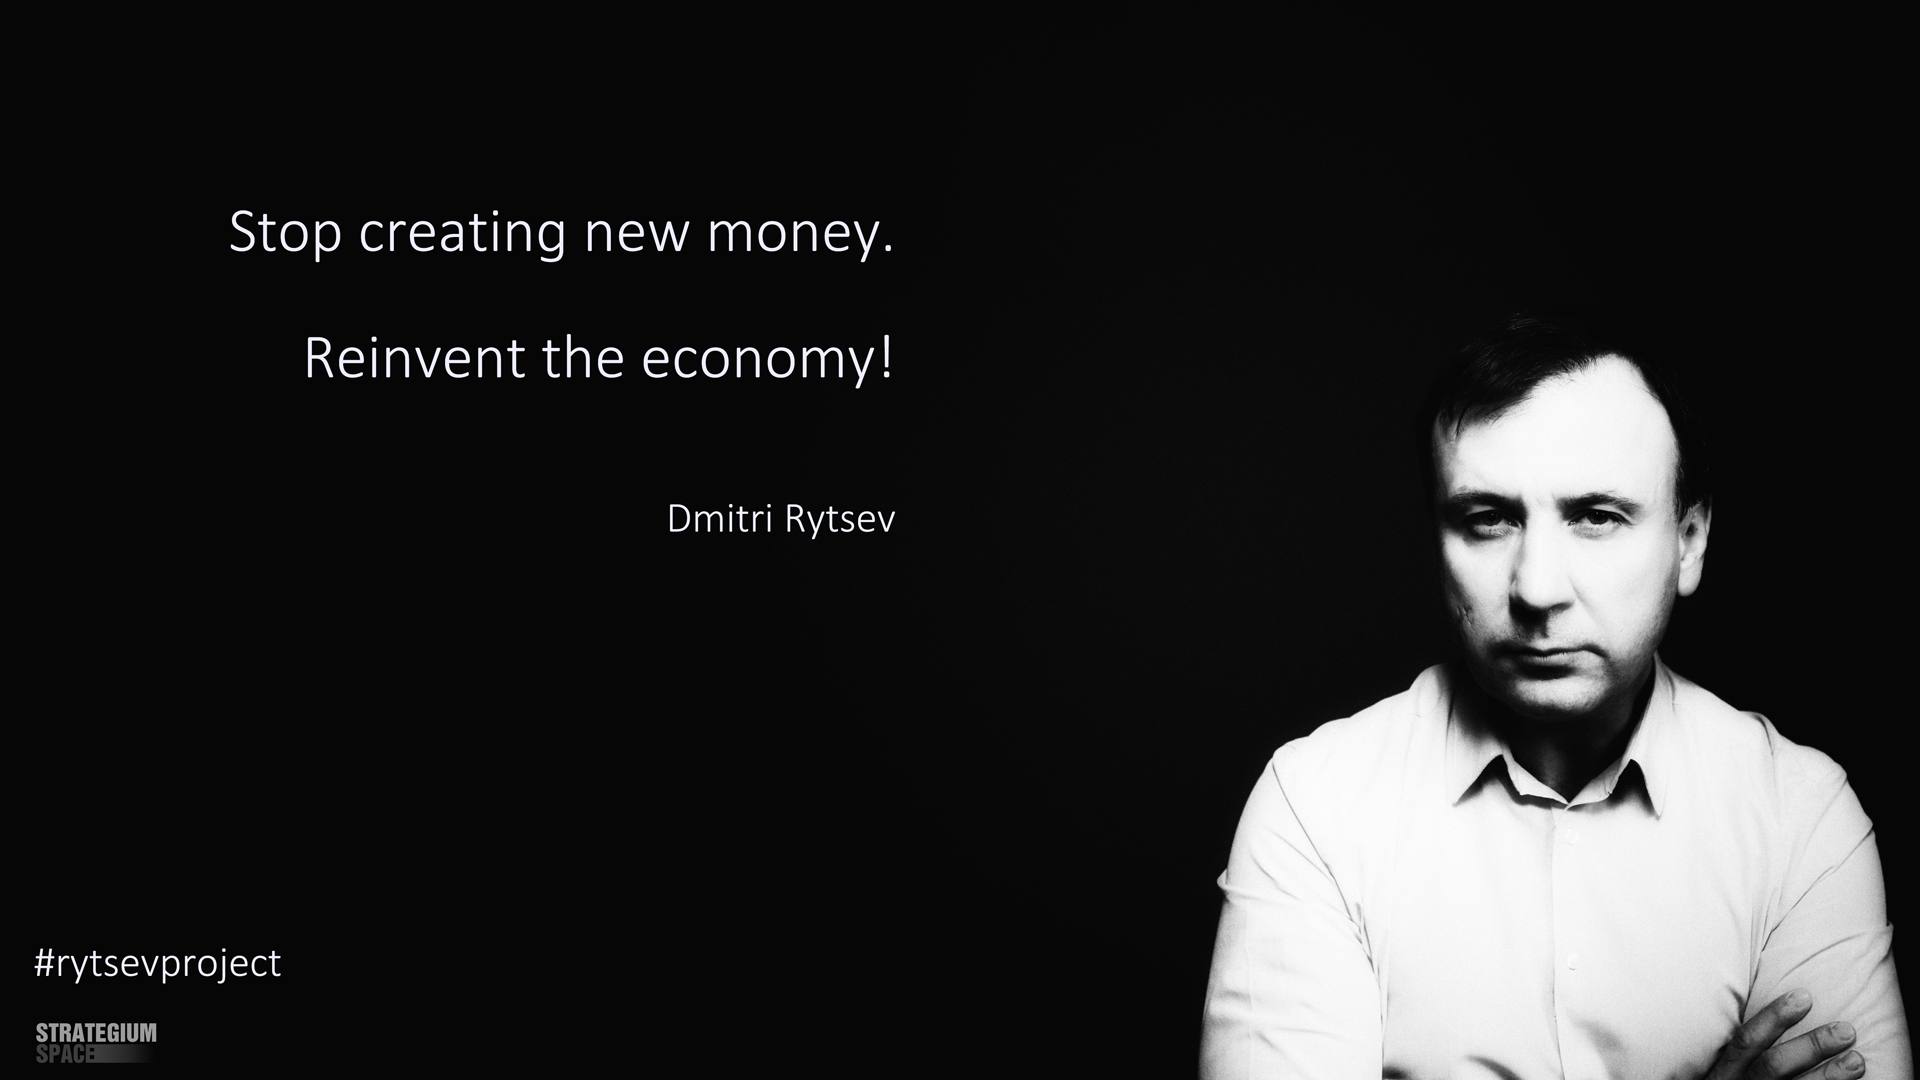 rytsevproject дмитрий рыцев rytsev reinvent the economy stop creating new money